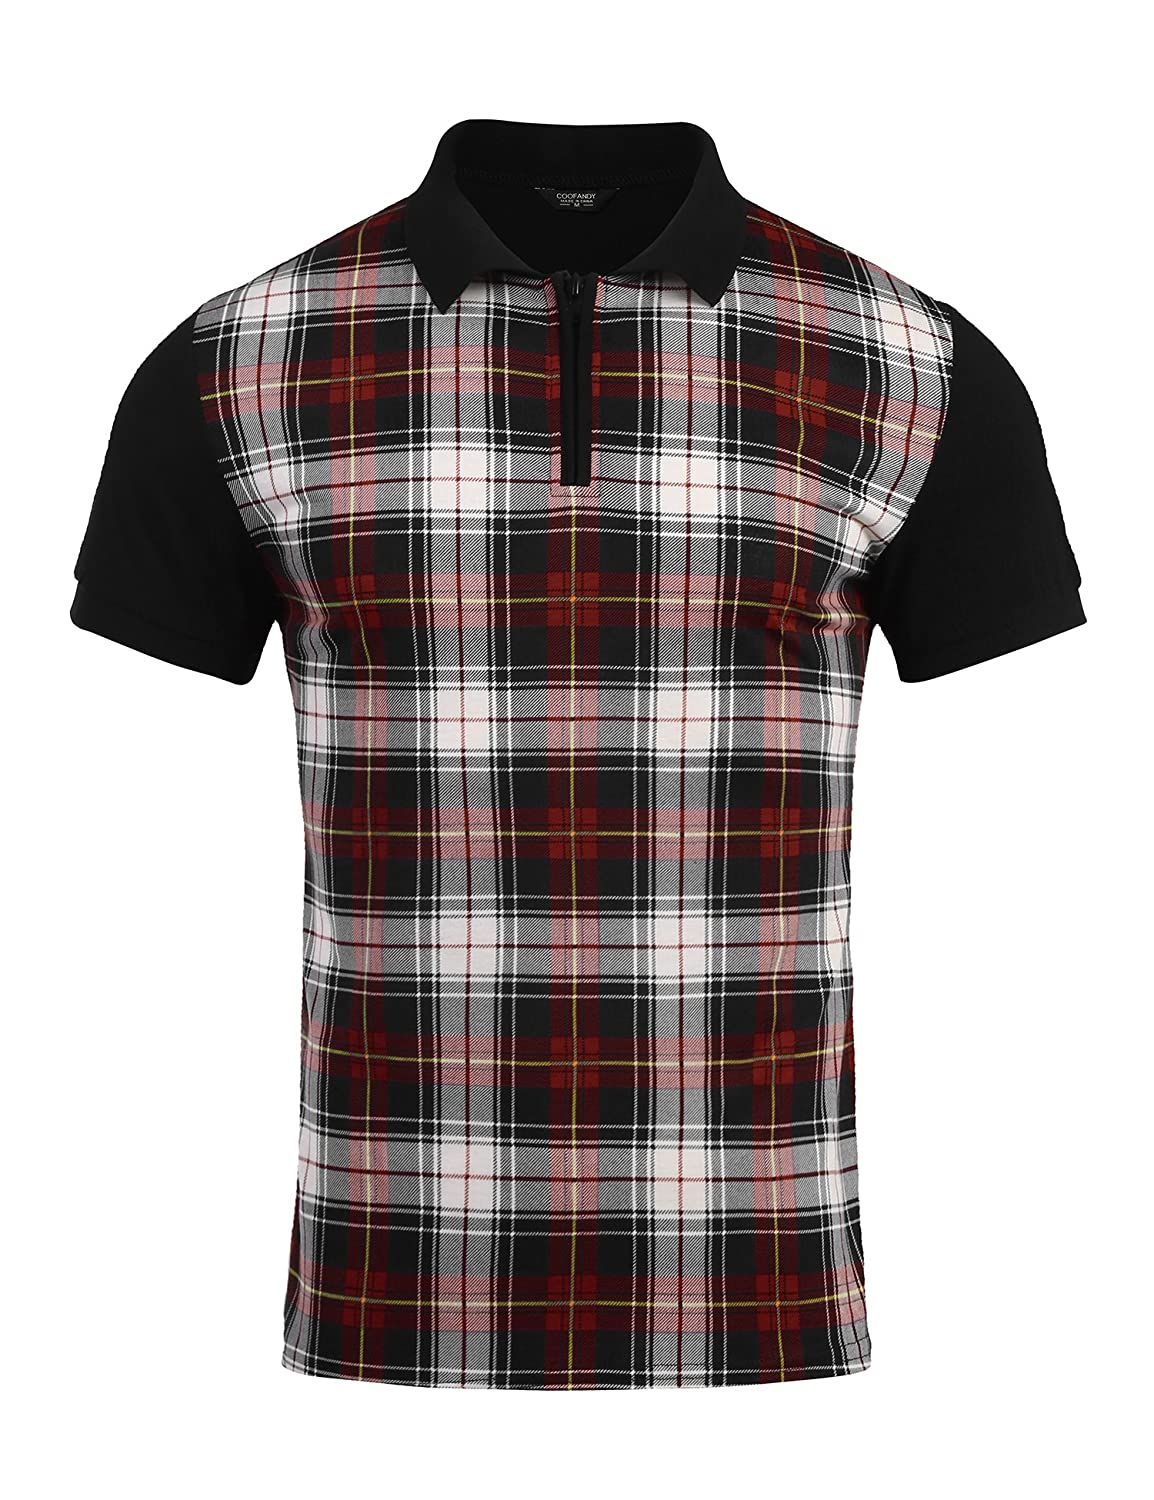 Vintage Shirts – Mens – Retro Shirts COOFANDY Mens Short Sleeve Plaid Zipper Shirts Collar Jersey Polo Shirt $21.99 AT vintagedancer.com